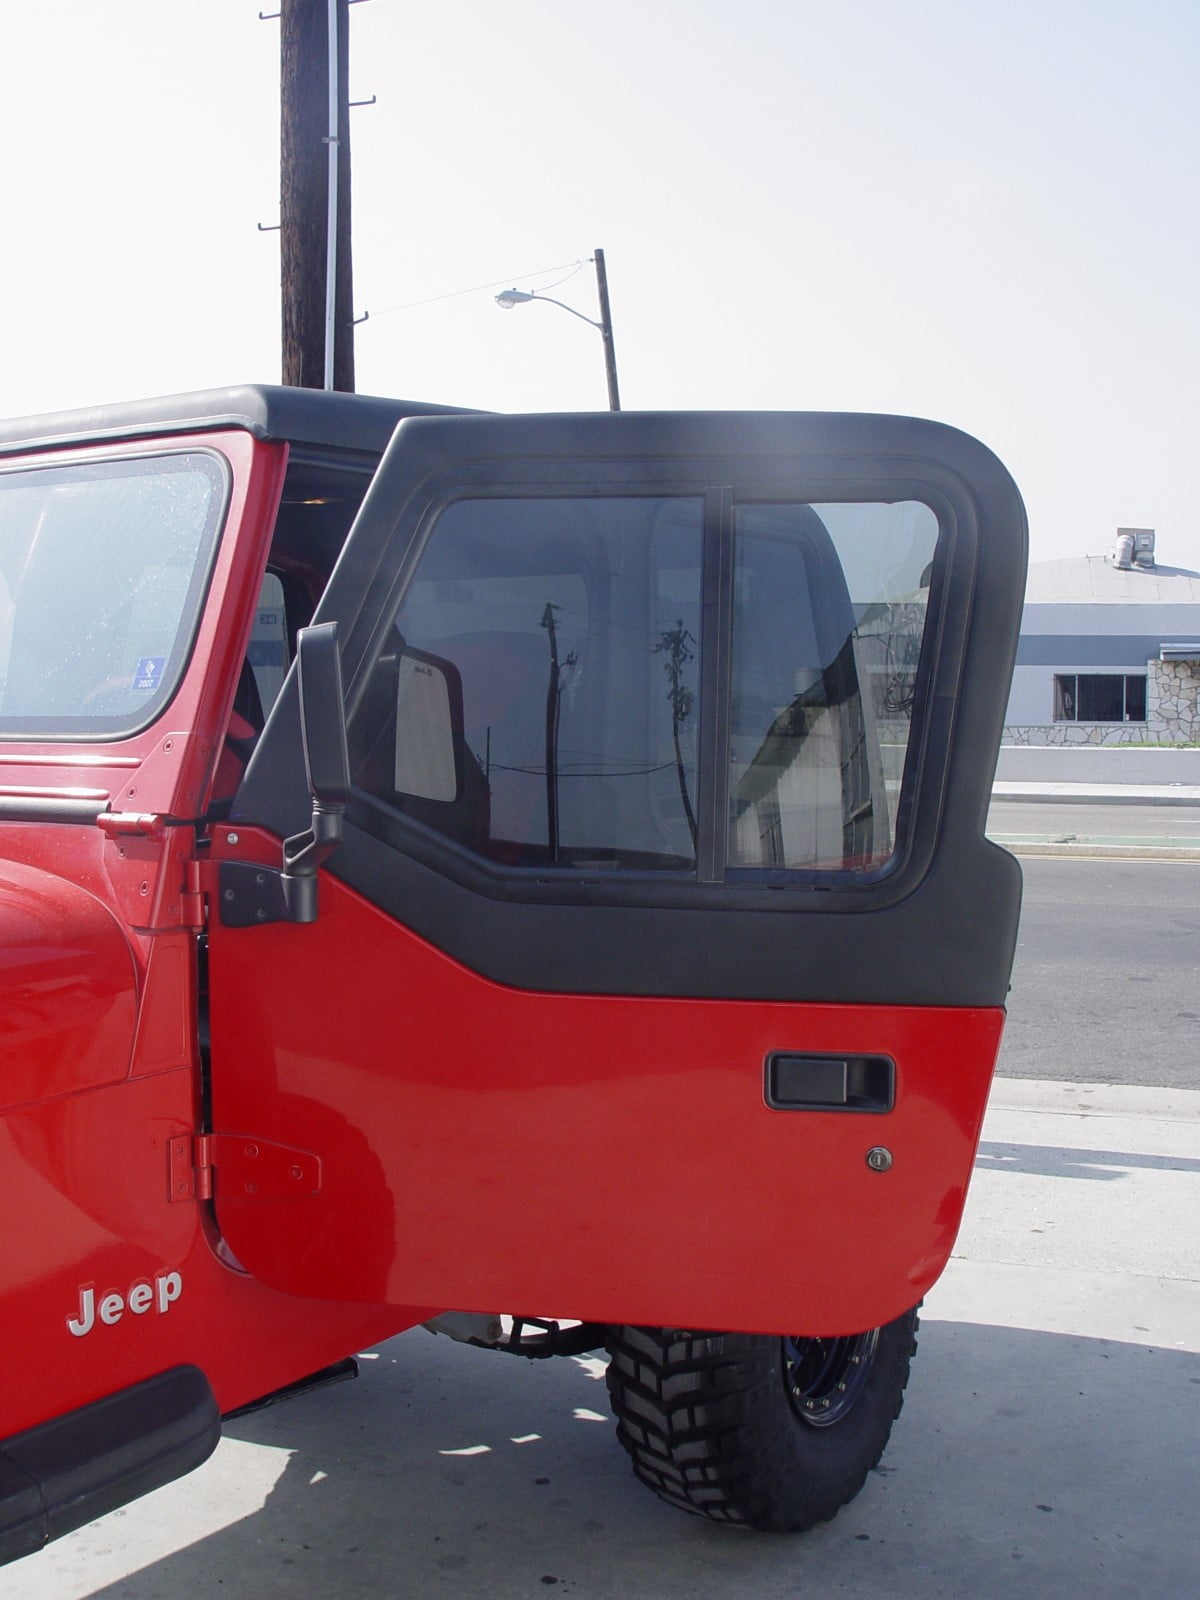 Jeep Half Doors For All Hard Or Soft Top Convertible Model